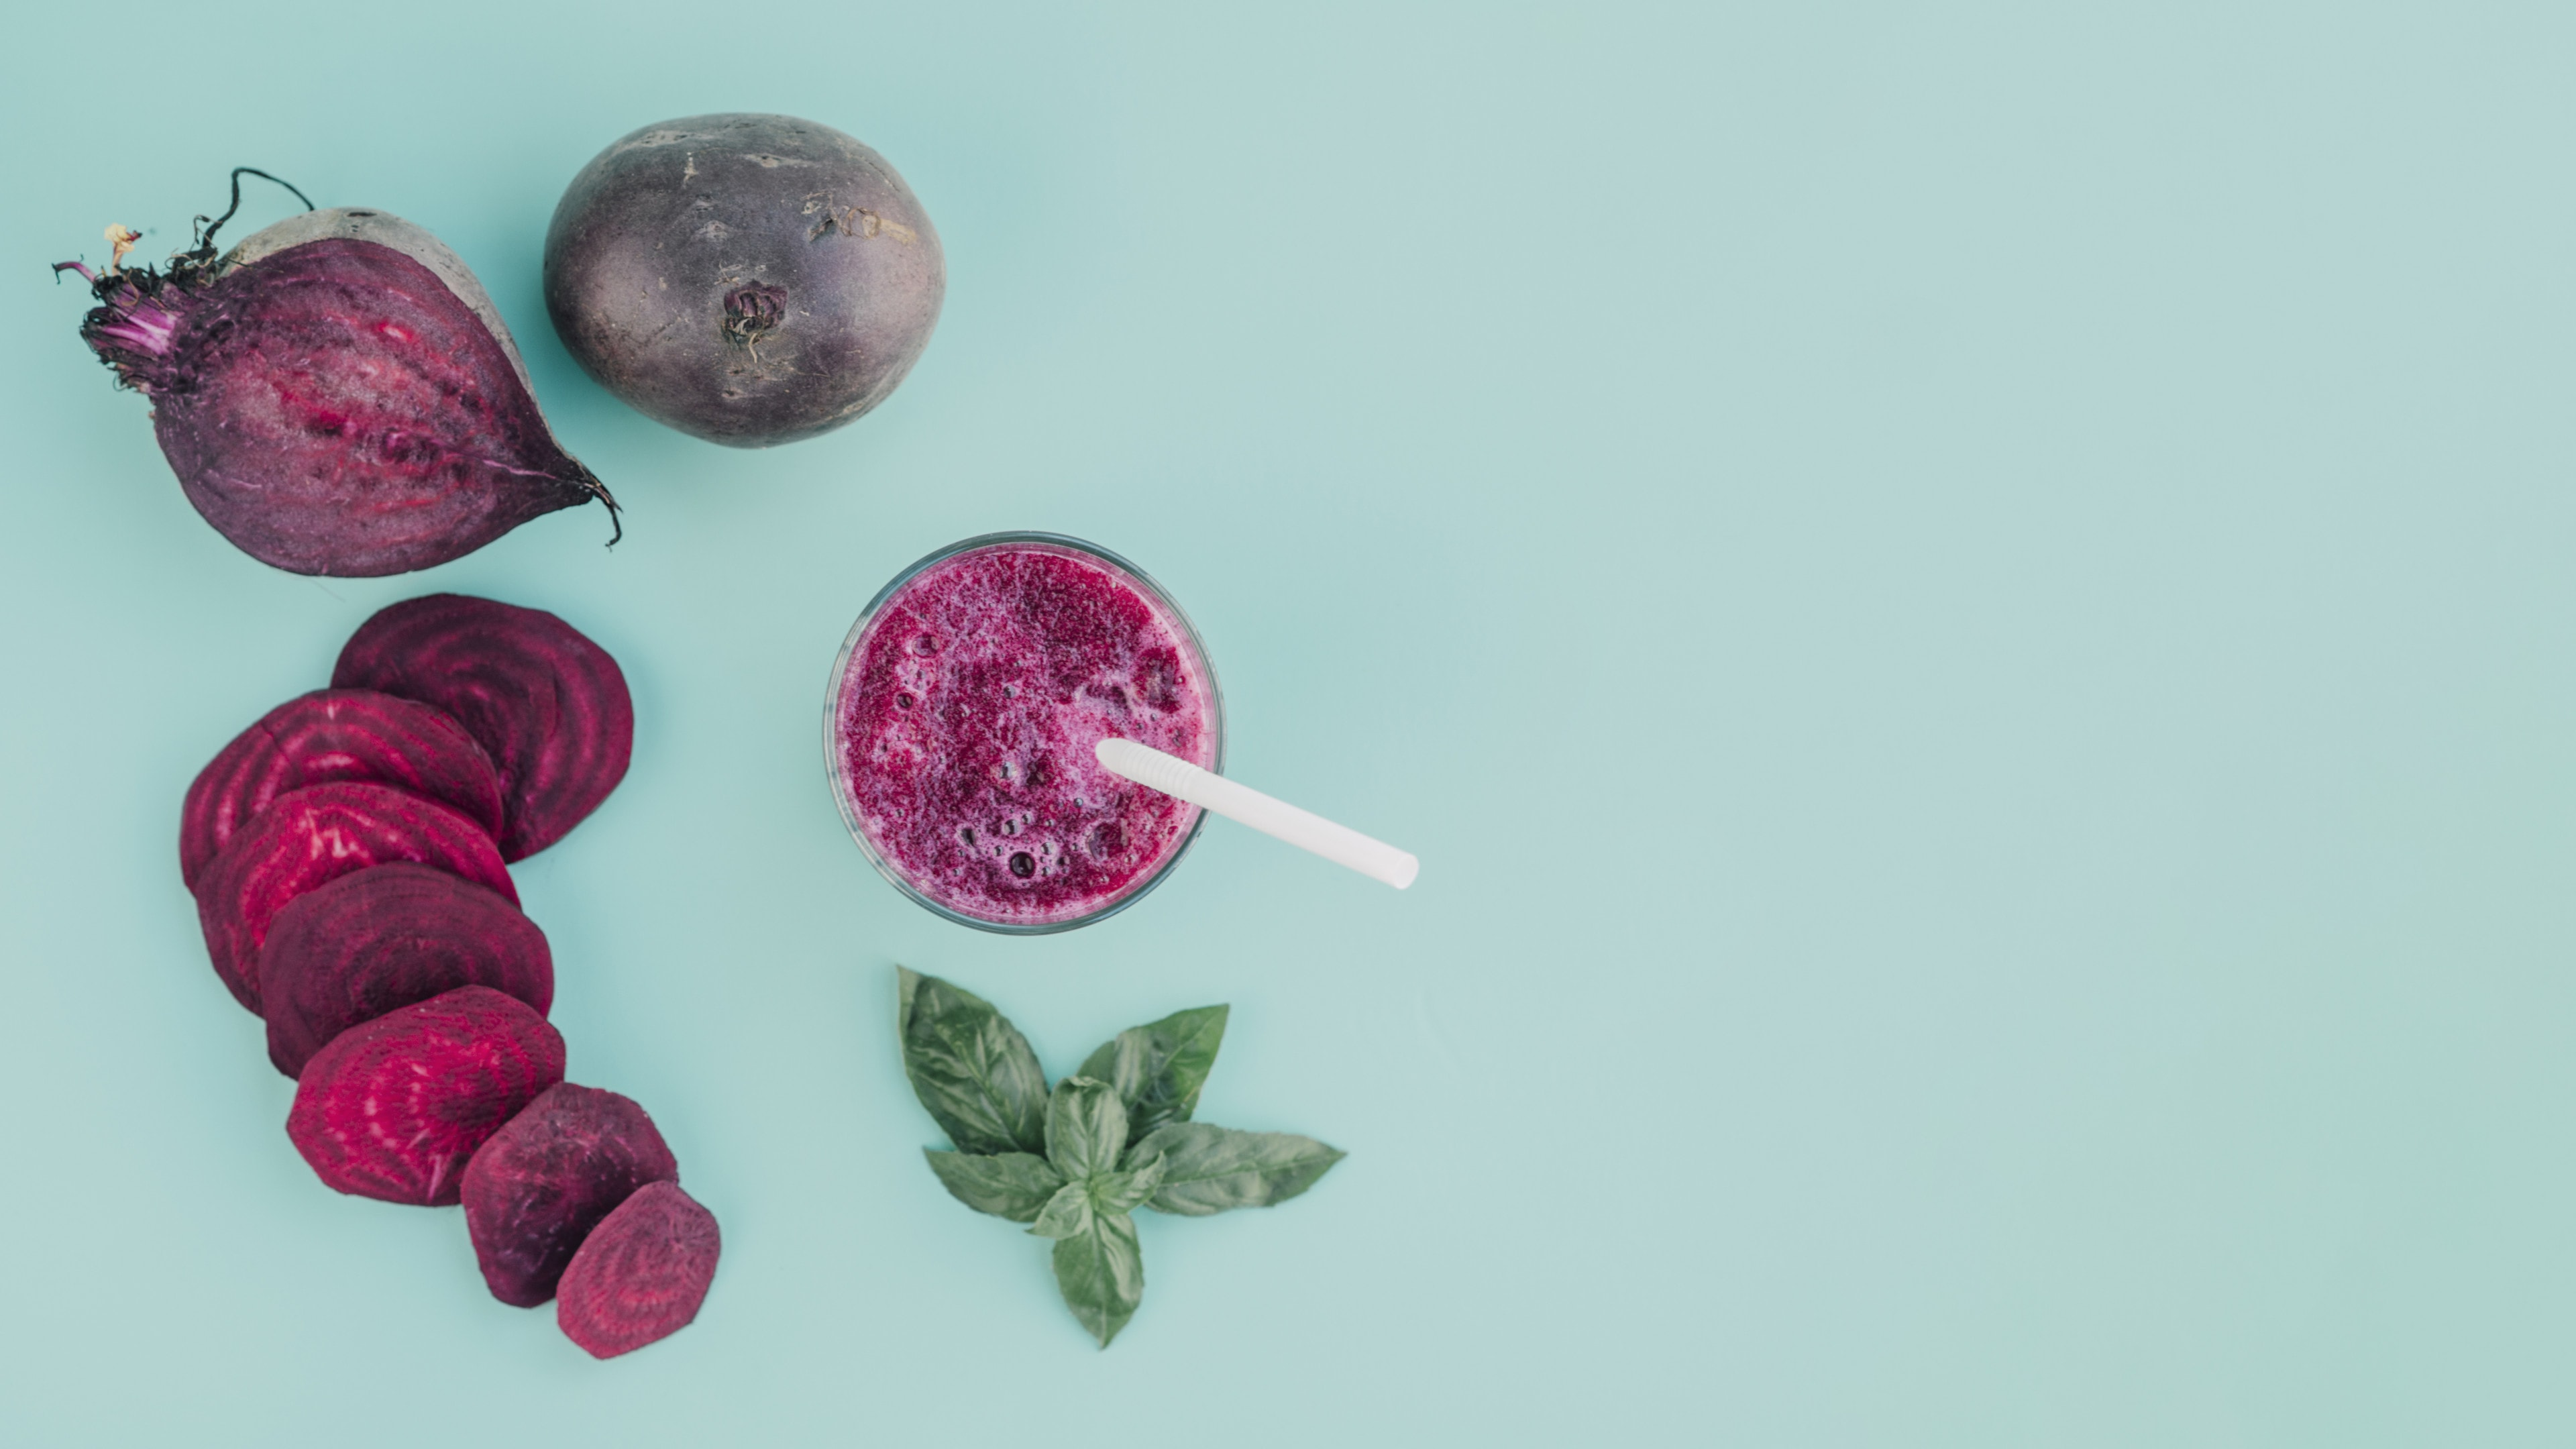 Beetroot slices and beetroot juice on gray table